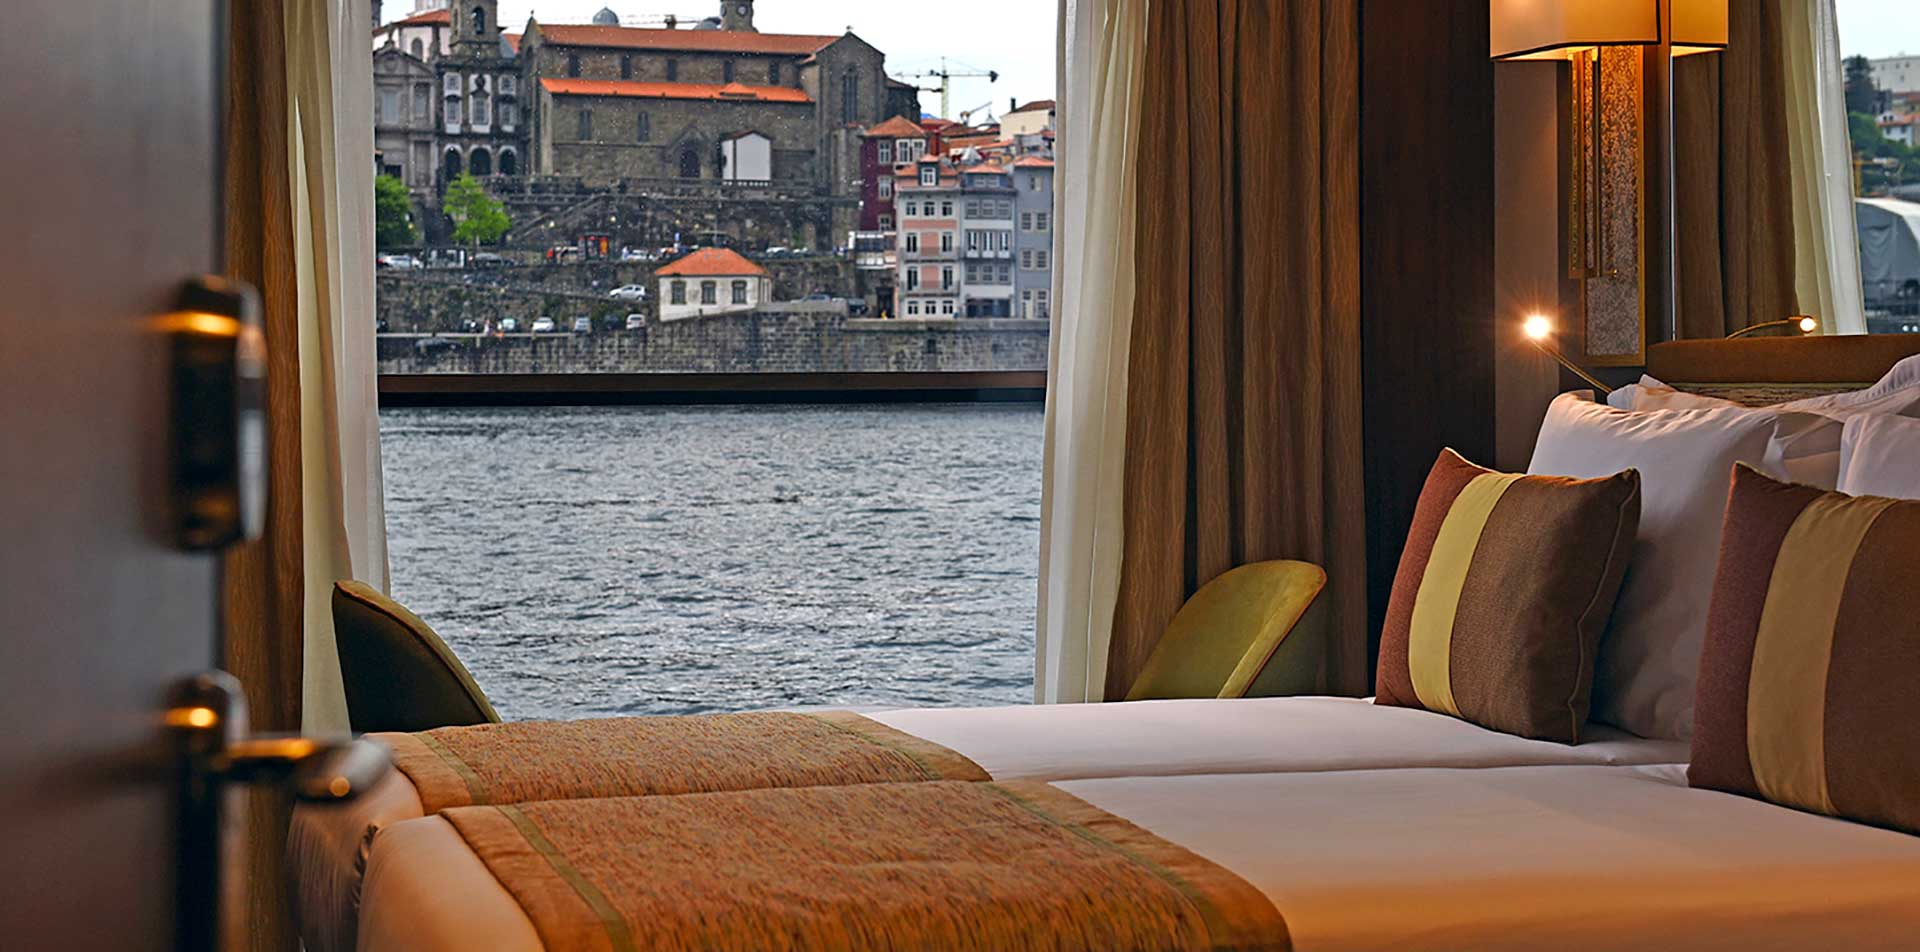 Europe river cruising Douro Splendour MS standard cabin beautiful view over looking river- luxury vacation destinations